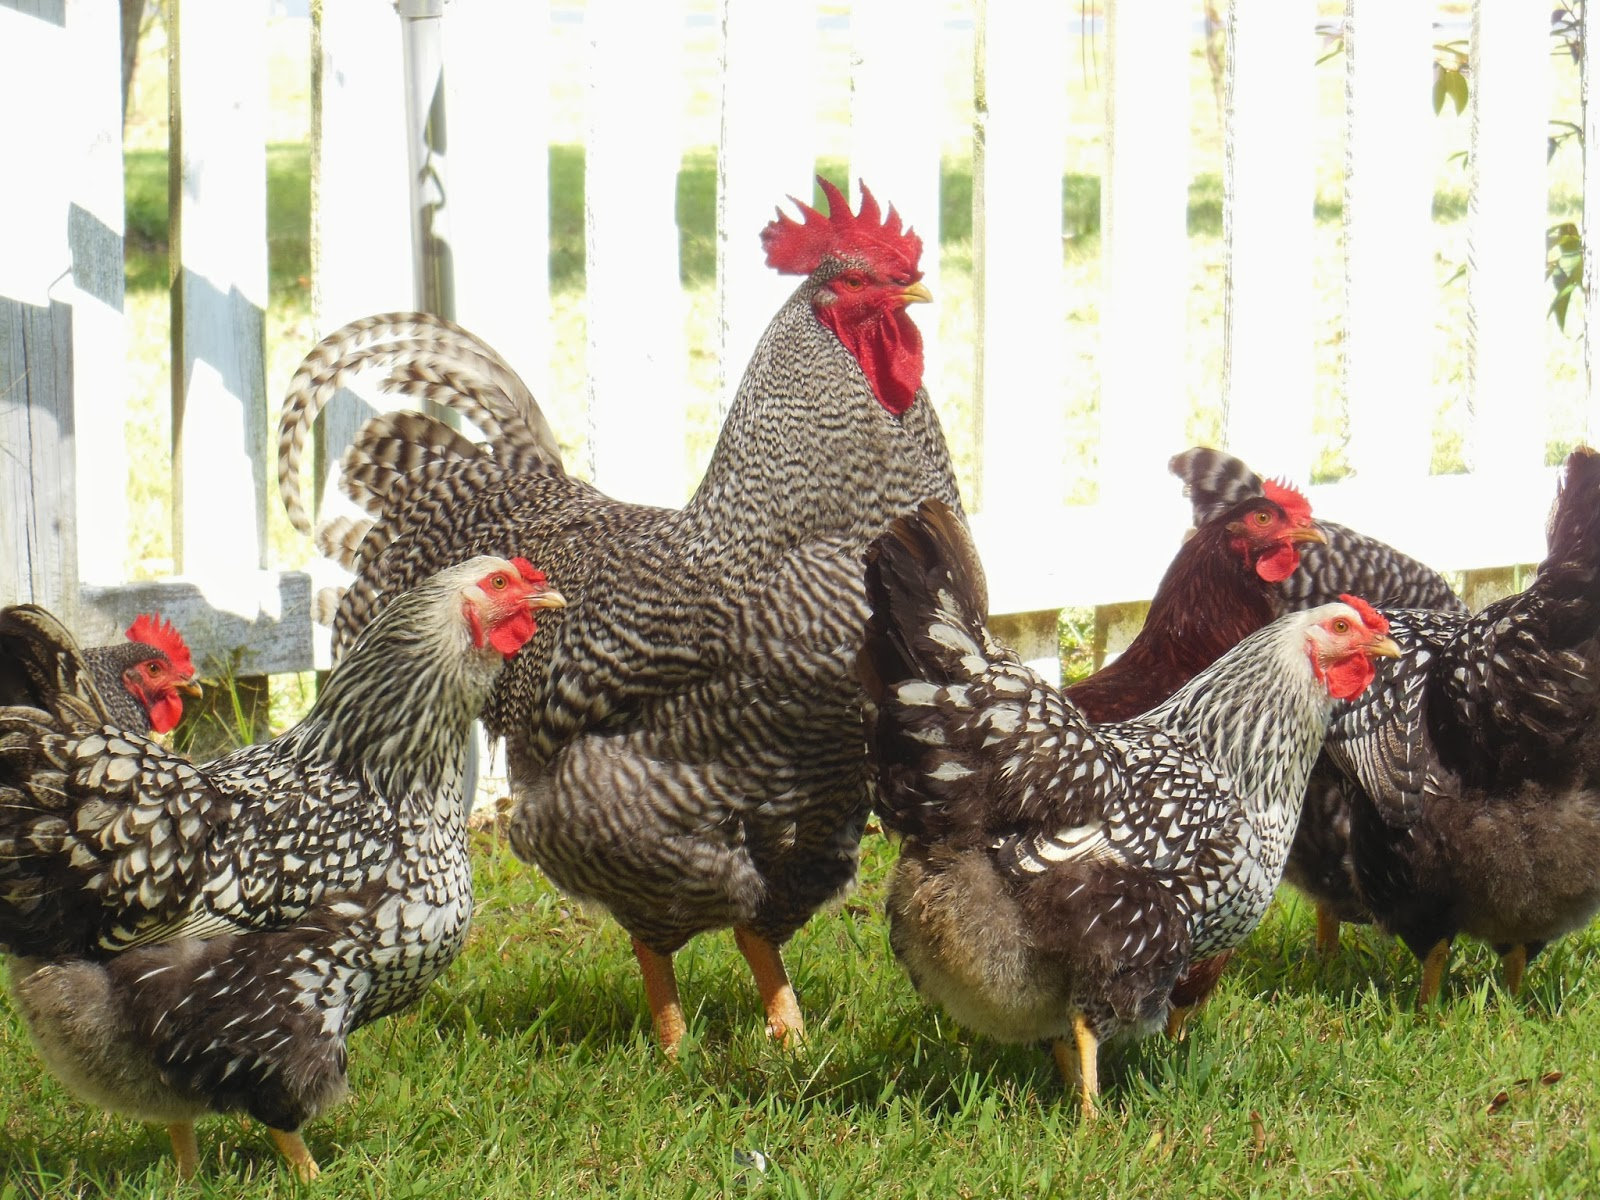 Barred Rock Rooster And Silver Laced Wynnadotte Hens